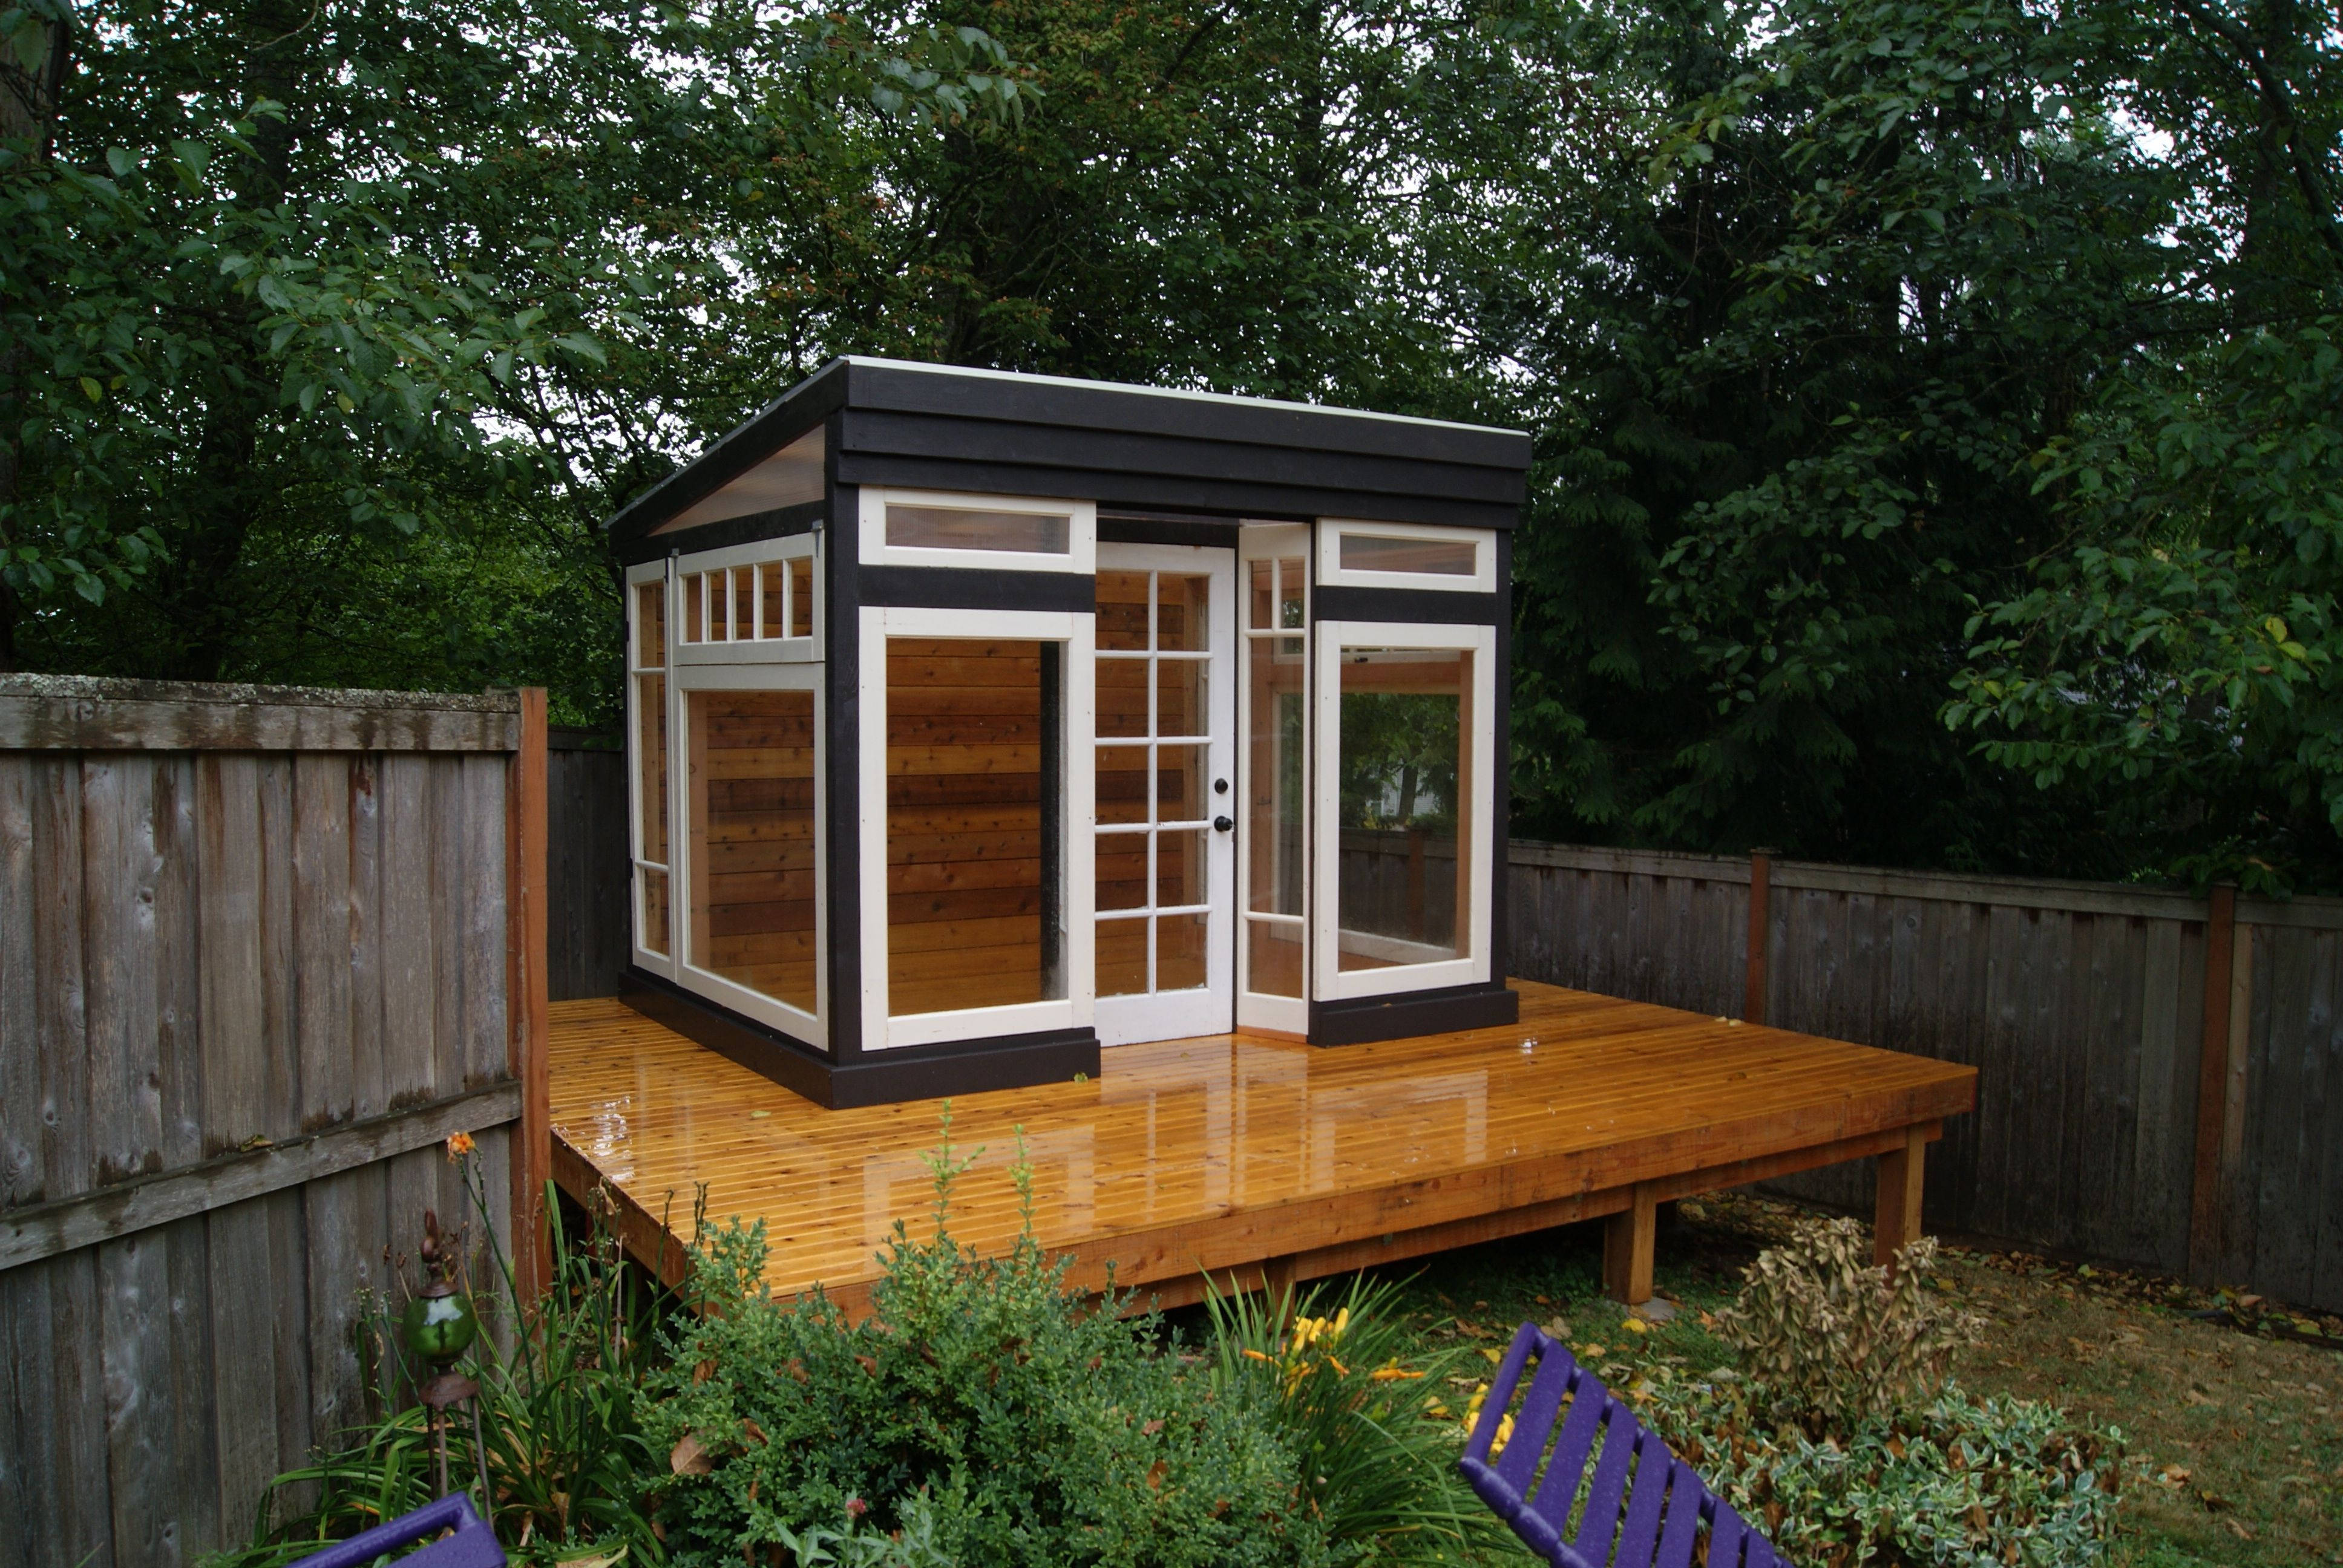 image.jpg 3,872×2,592 pixels | Shed to tiny house ...